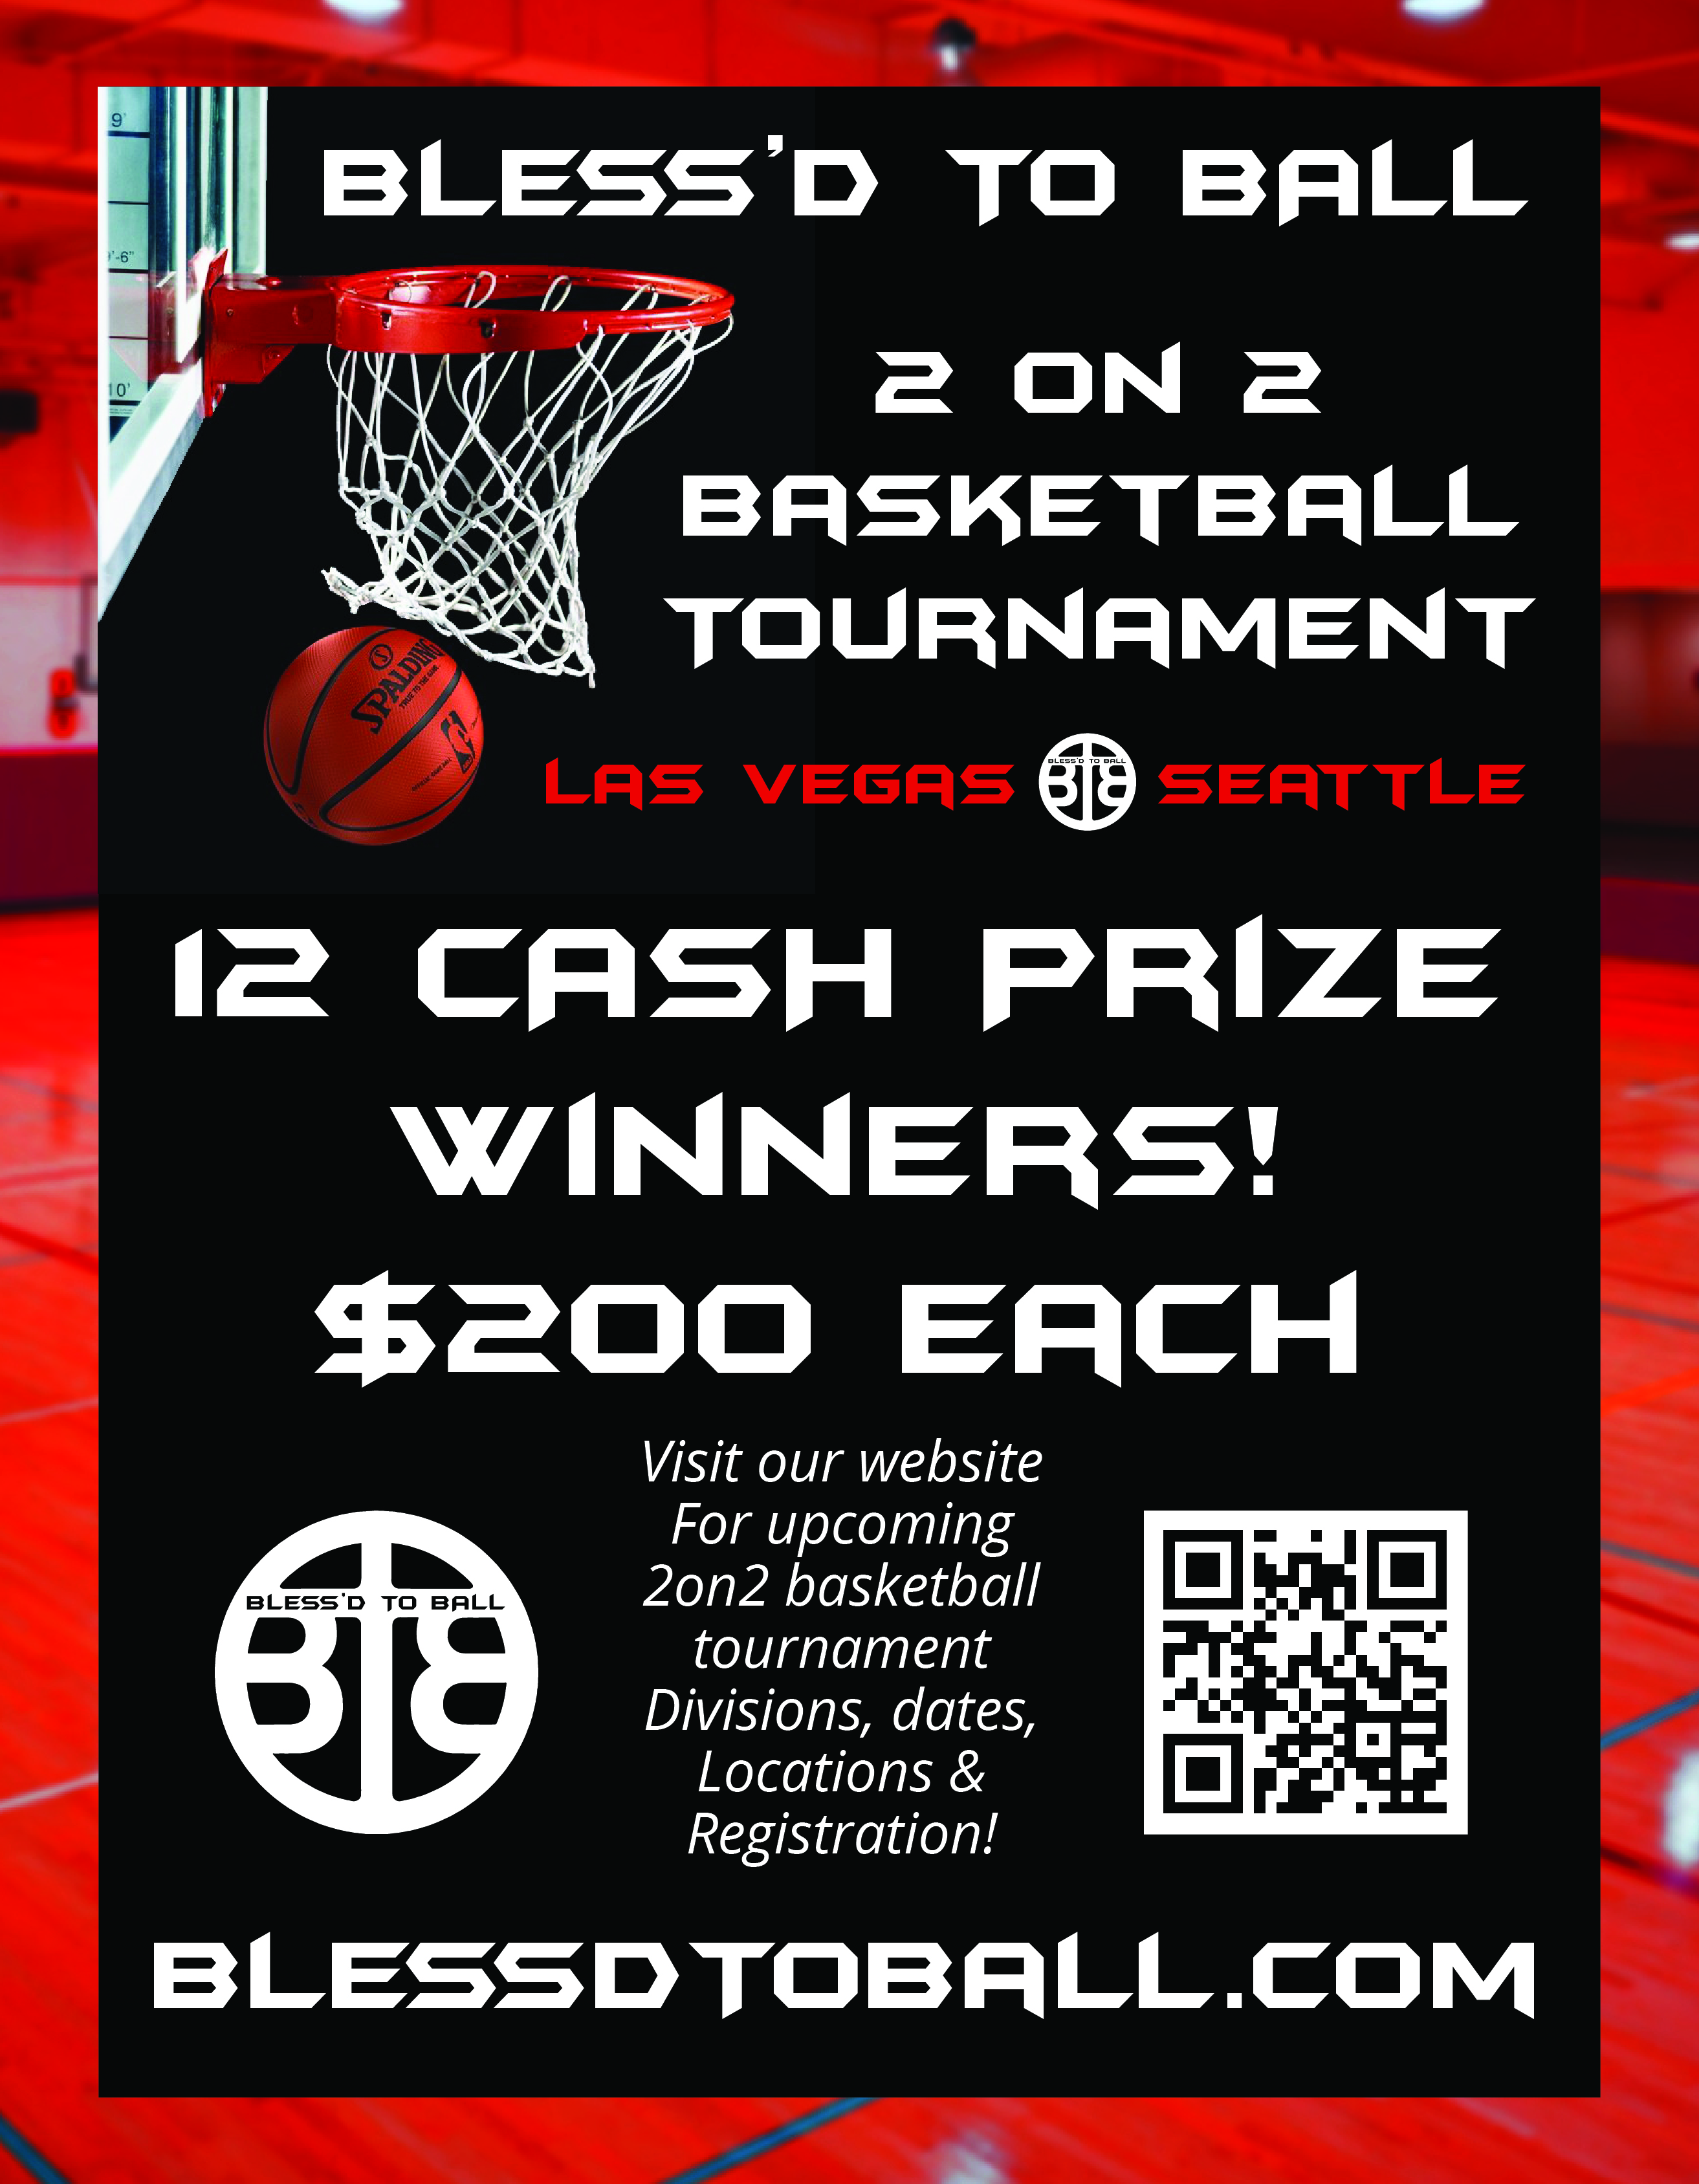 flyer design for bless d to ball basketball tournament tracy